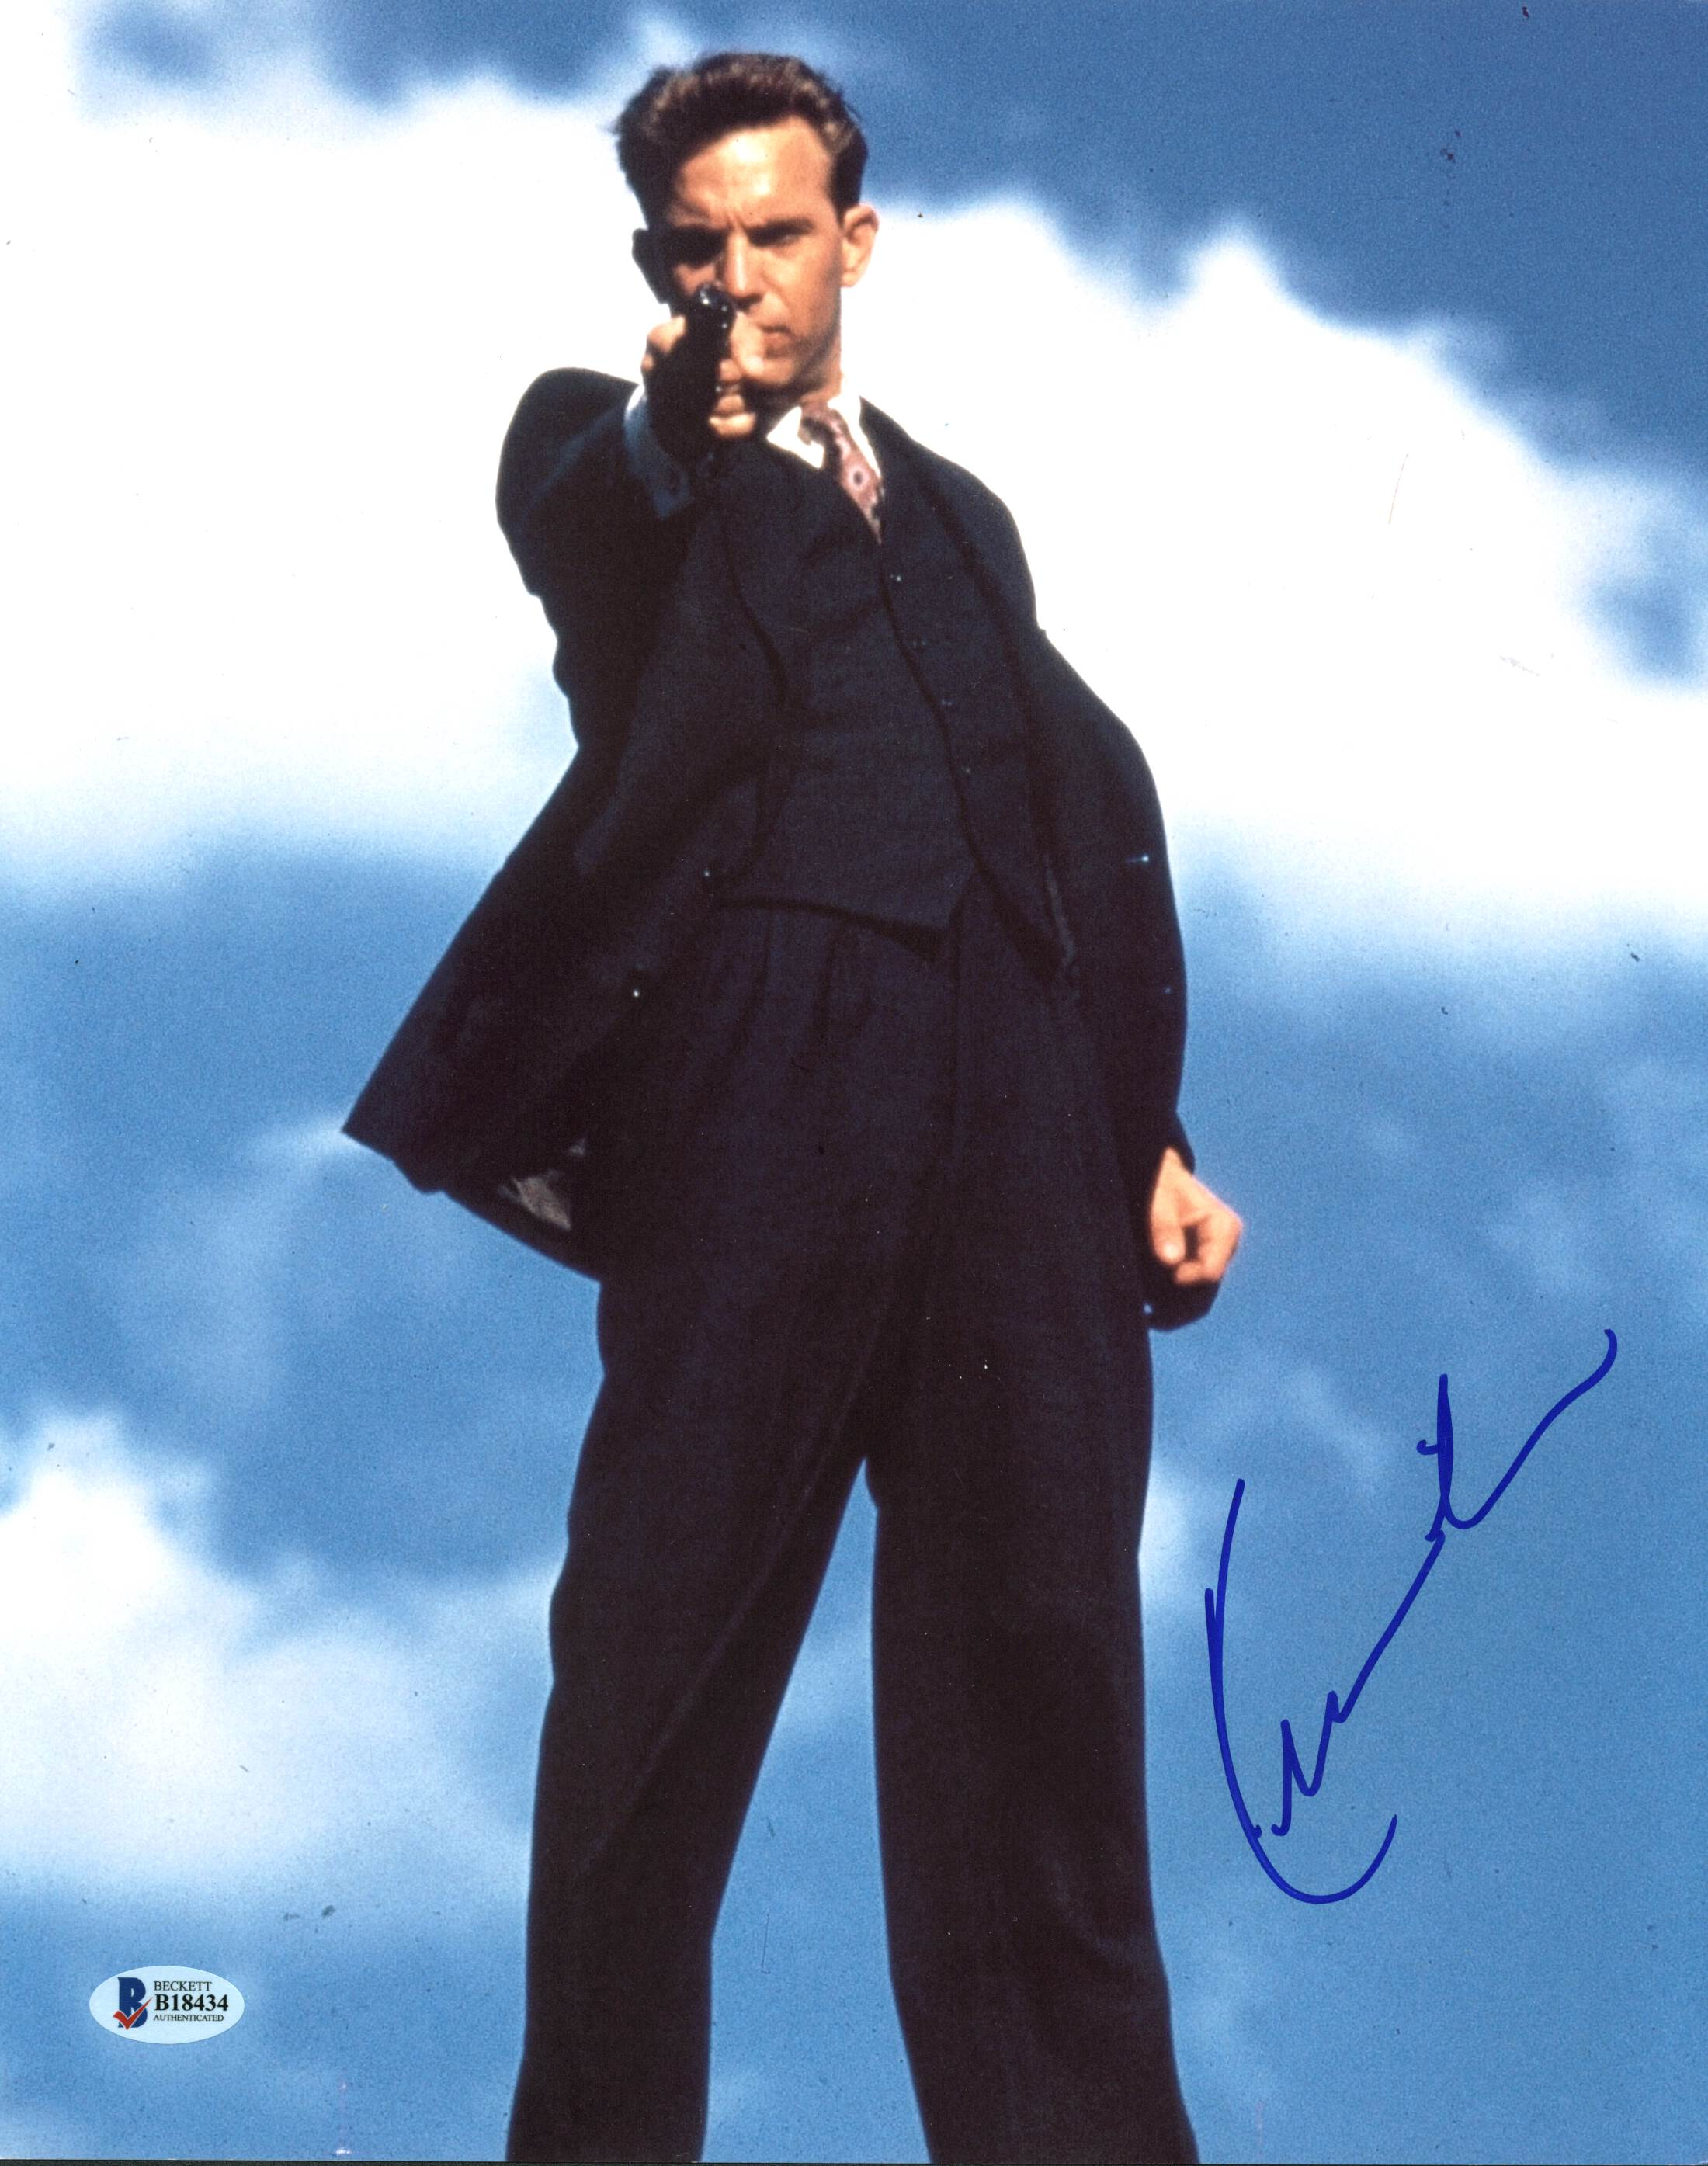 Kevin Costner The Untouchables Authentic Signed 11X14 Photo BAS #B18434